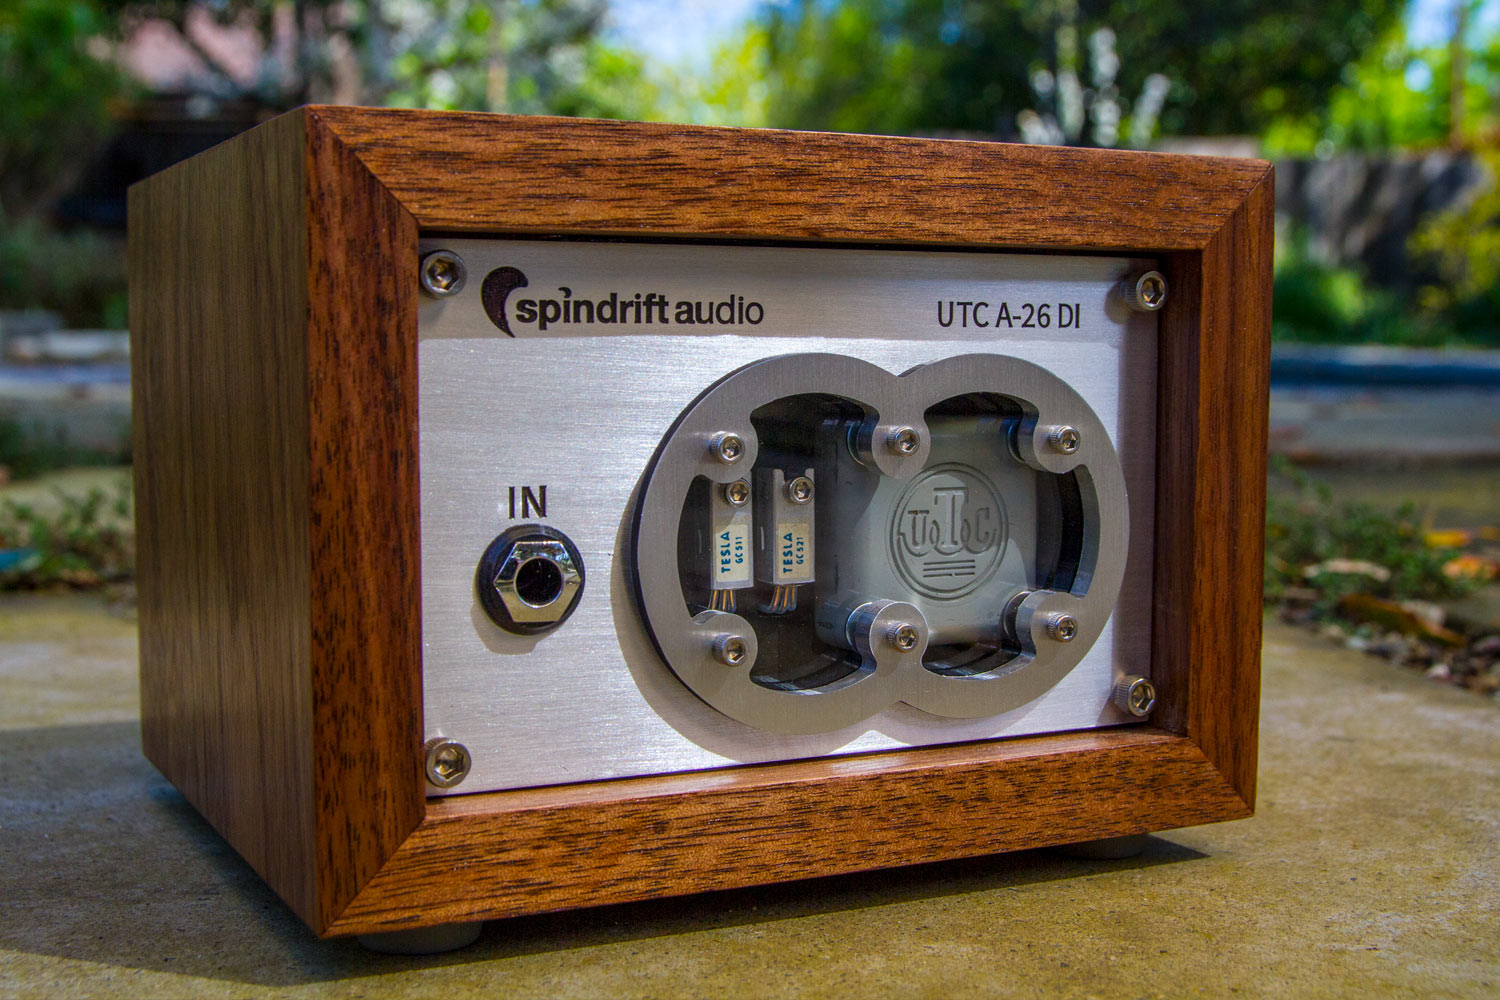 Spindrift Audio - Custom UTC A-26 DI Box